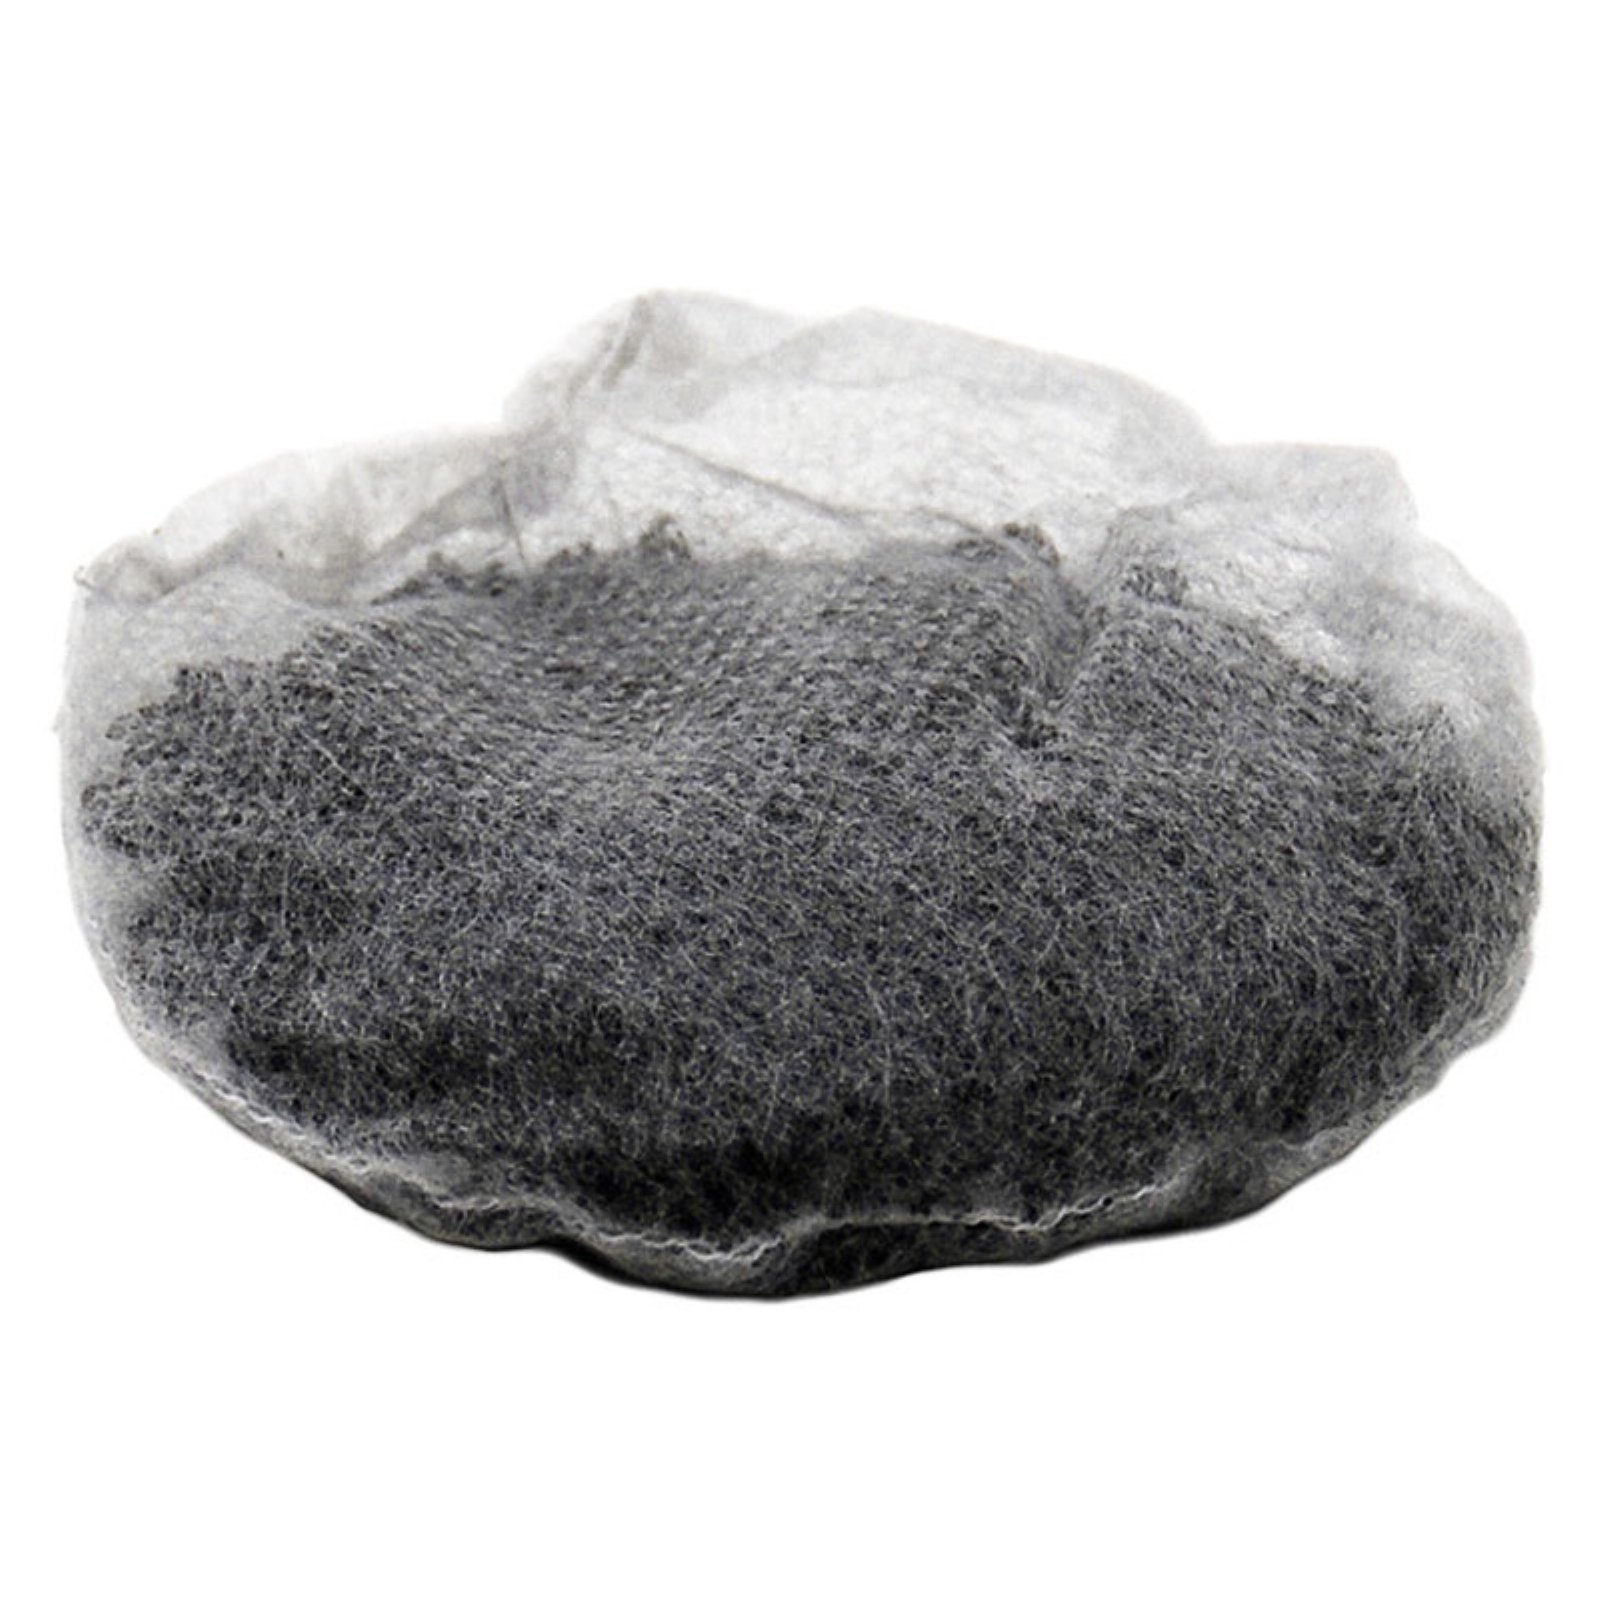 Achla Designs Compost Pale Charcoal Filters - Set of 6